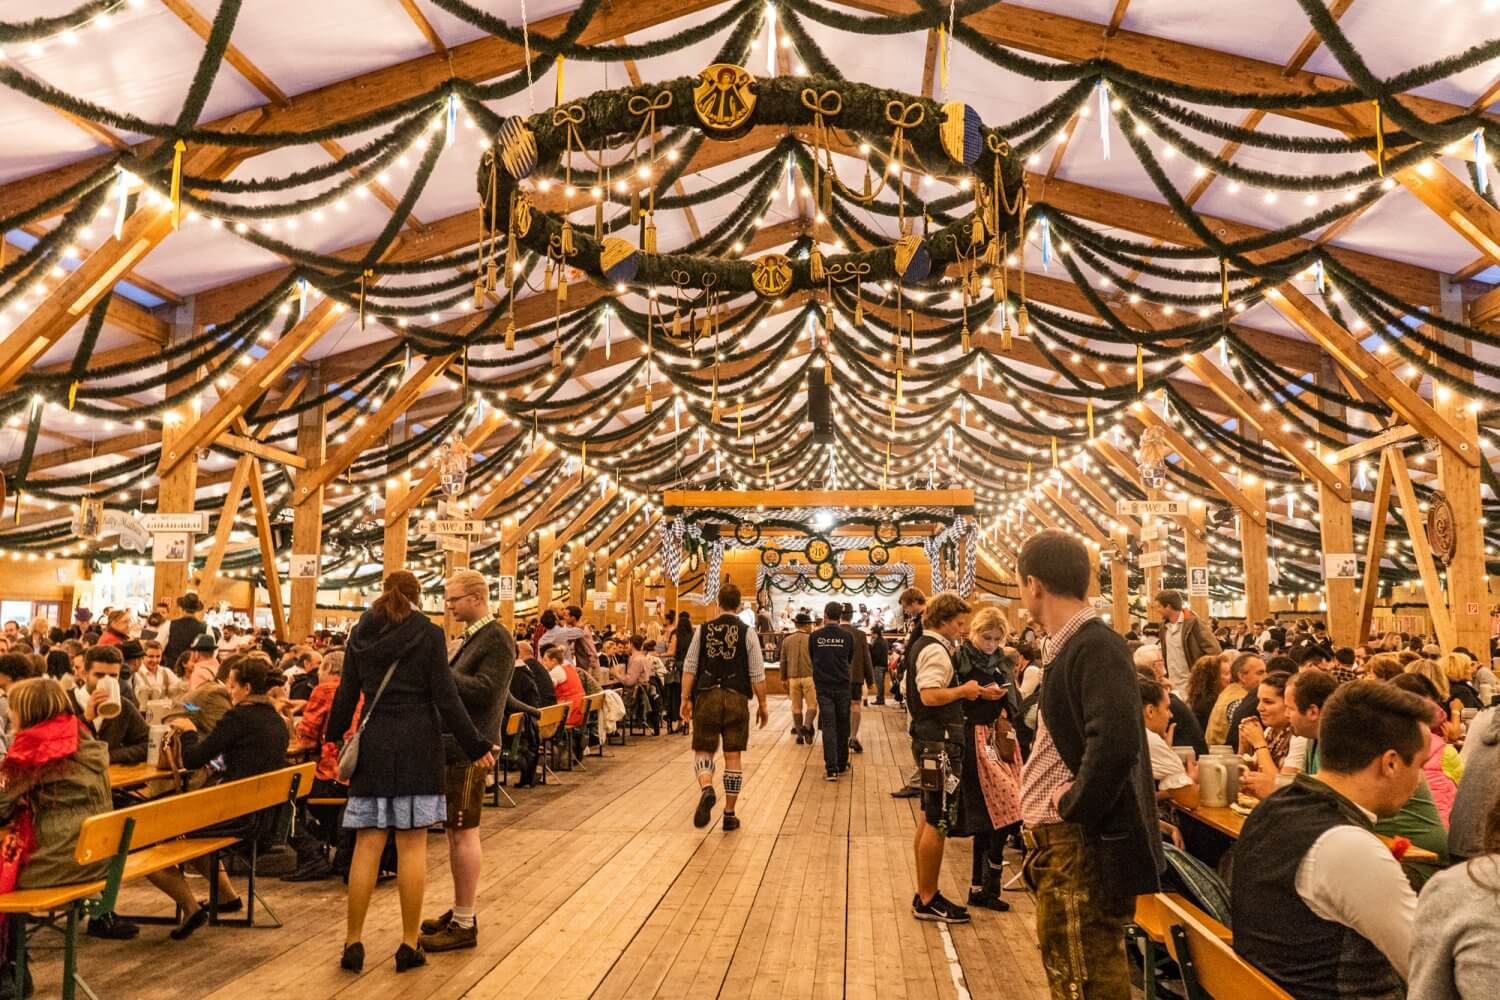 Festzelt Tradition at Oktoberfest in Munich, Germany